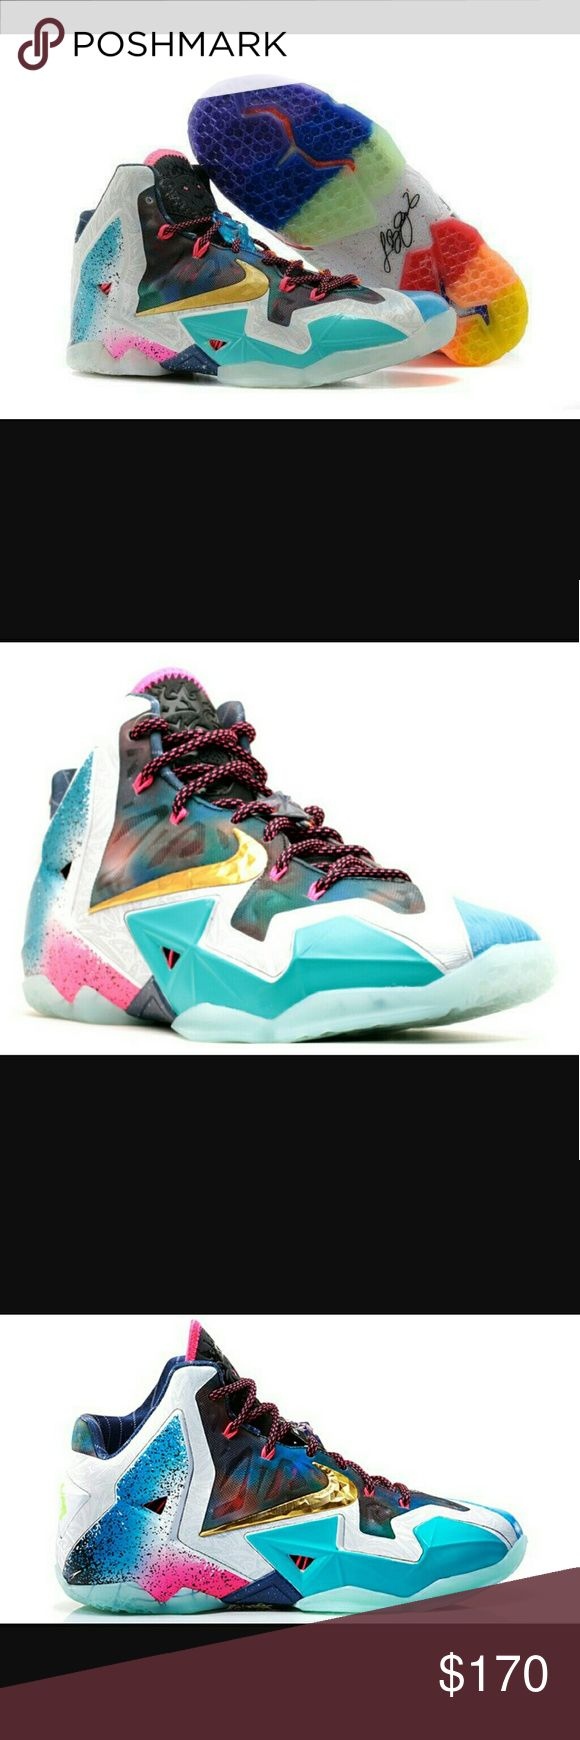 Nike lebron 11 colorways Very colorful not the right size has been worn once but then cleaned look brand new Nike Shoes Athletic Shoes